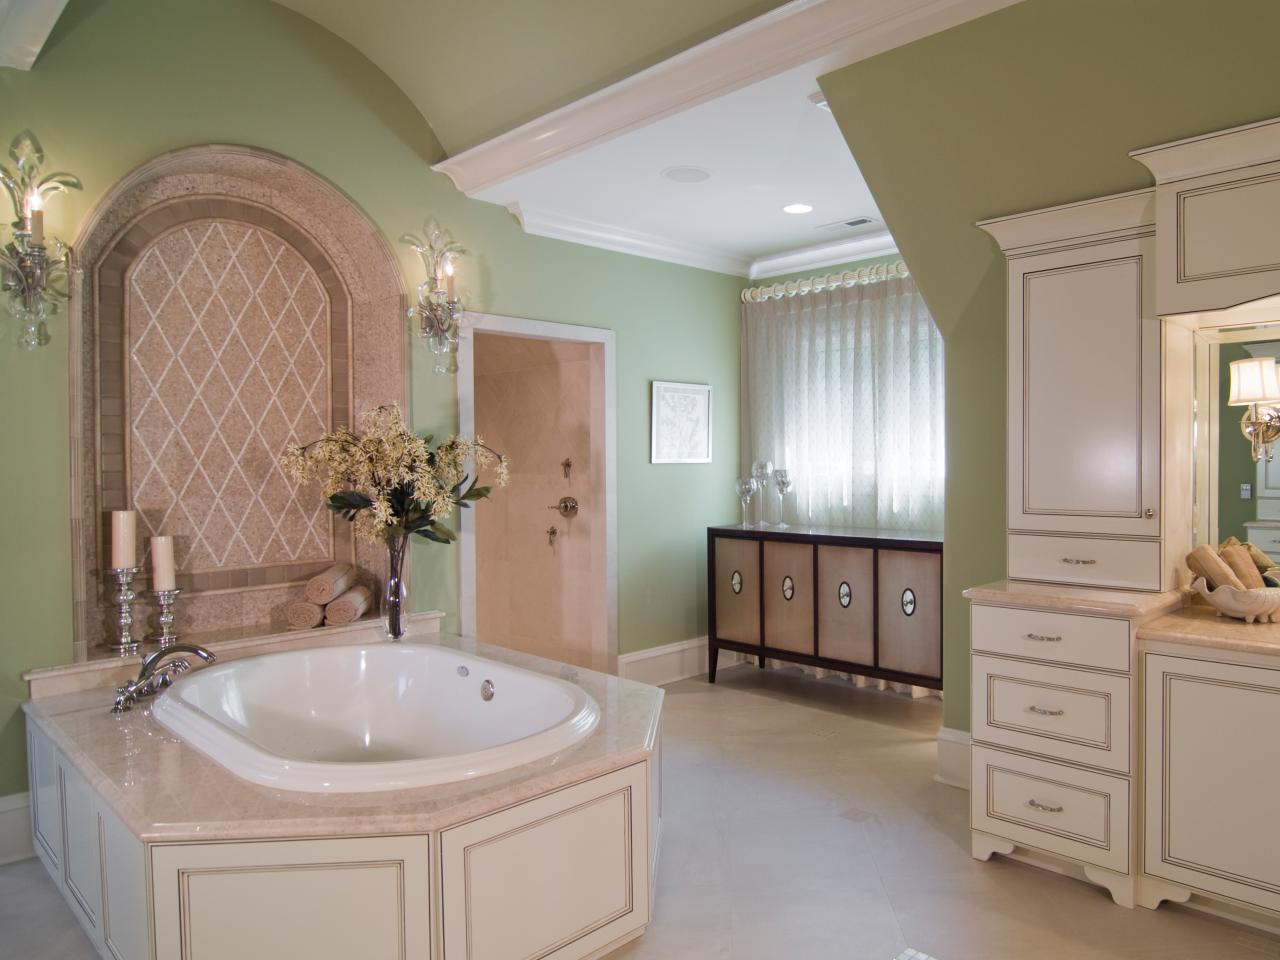 CI-Carolina-Design-Associates-mint-master-bath-beauty_s4x3.jpg.rend.hgtvcom.1280.960